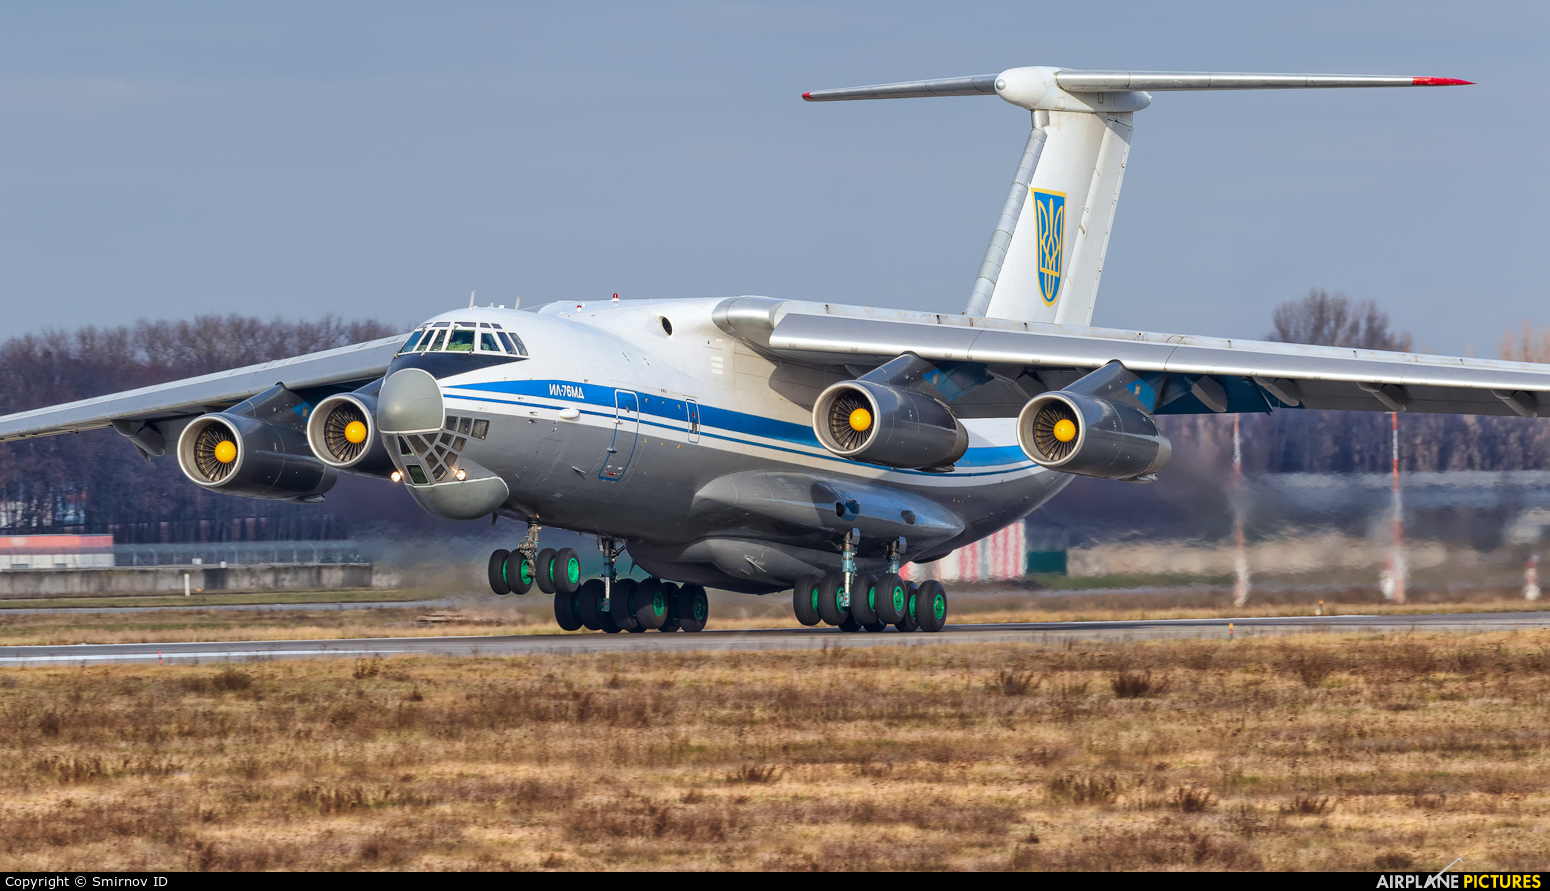 Ukraine - Air Force 76699 aircraft at Kyiv - Borispol